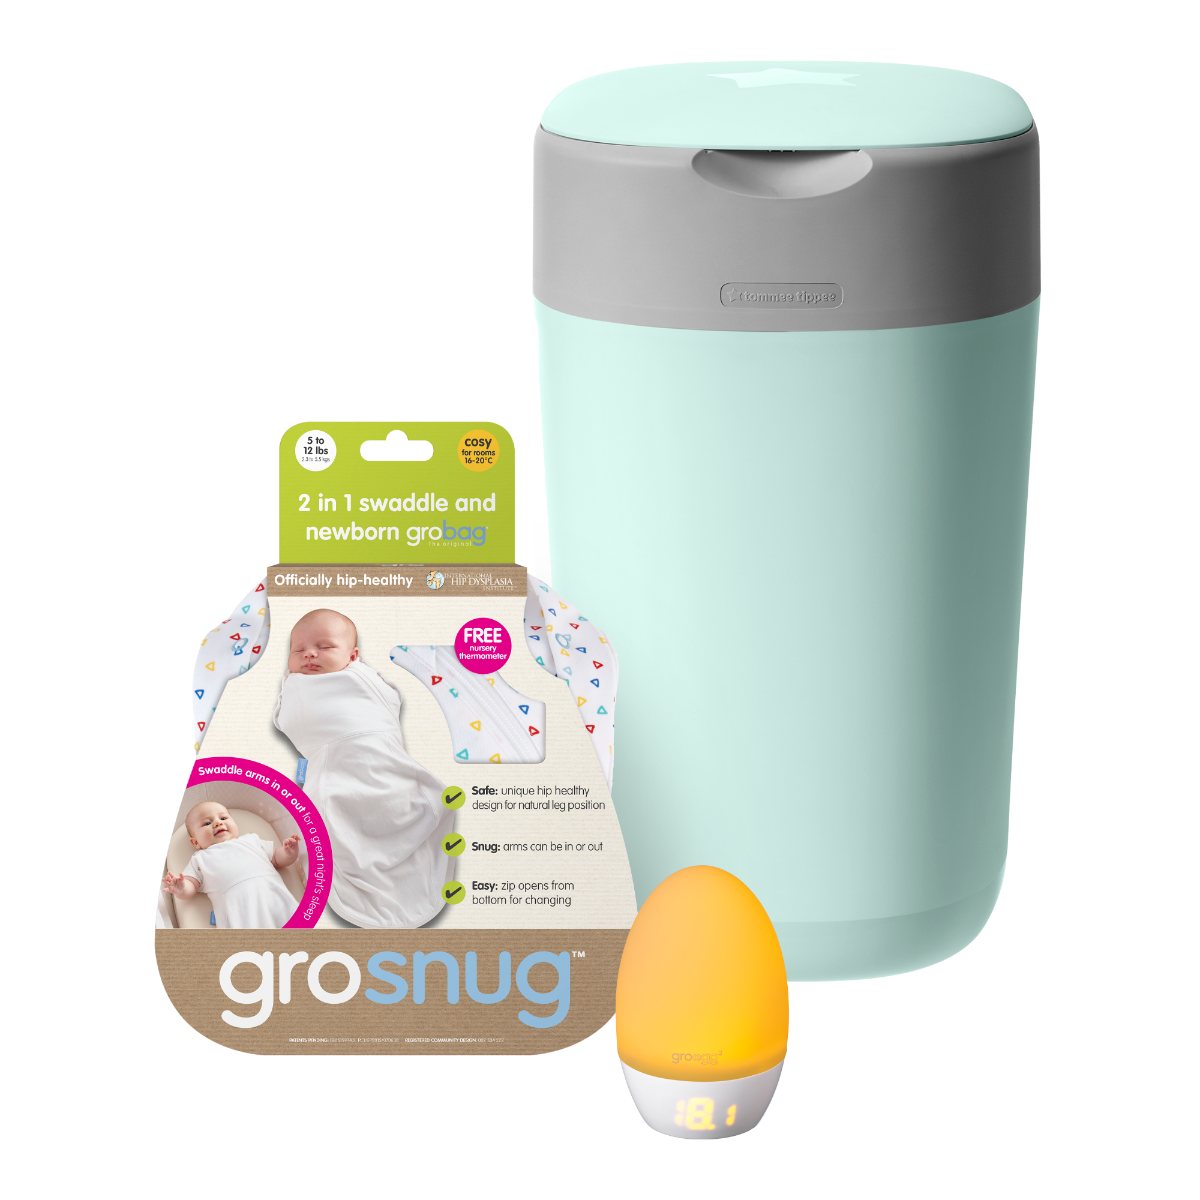 green-twist-and-click-with-grosnug-and-groegg